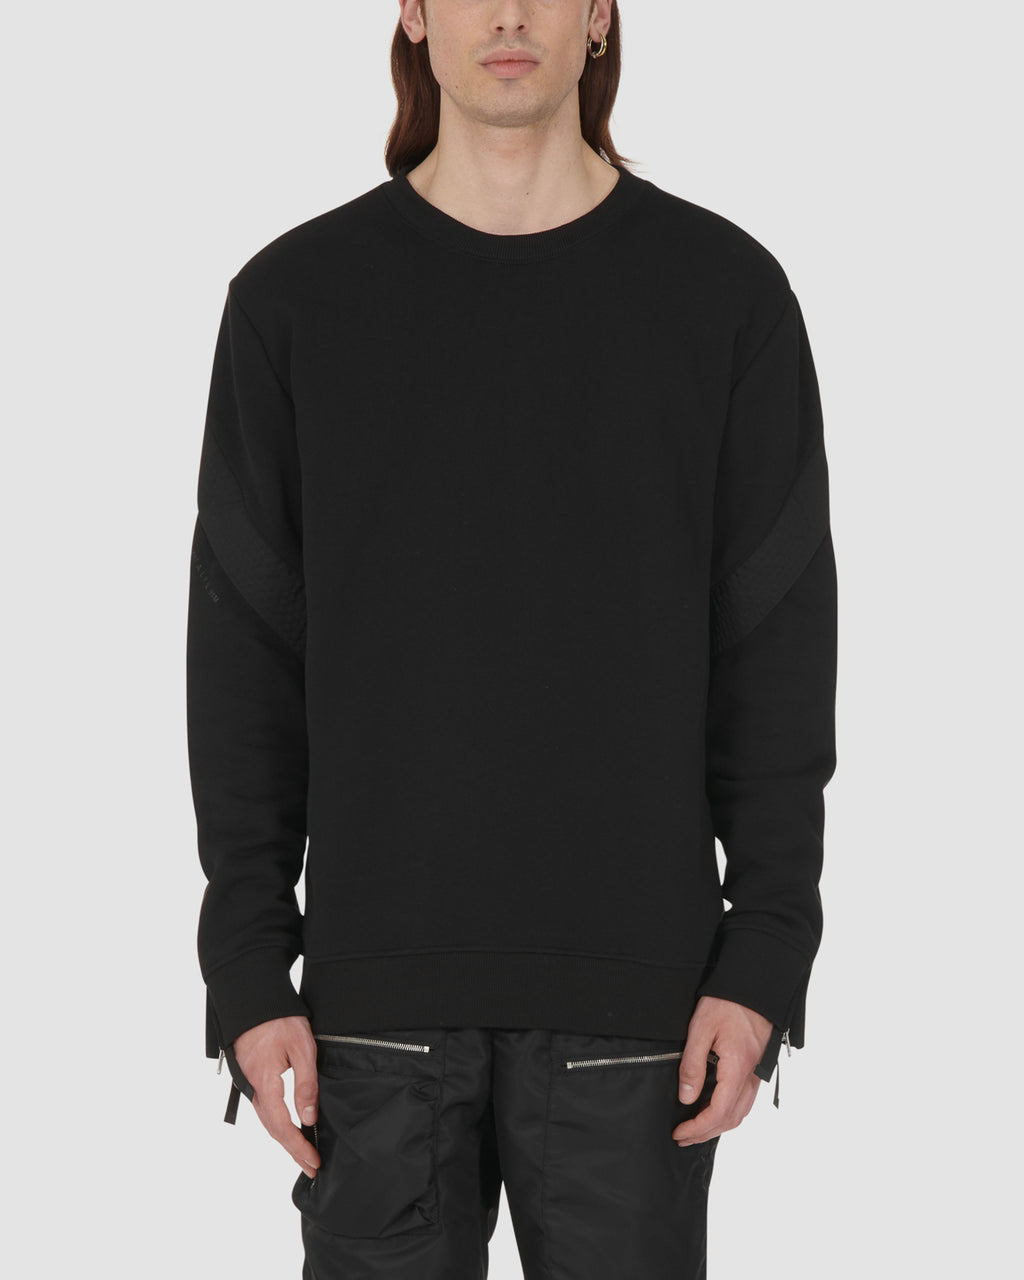 1017 ALYX 9SM | TREK CREWNECK SWEATSHIRT | Sweatshirt | Black, Google Shopping, Man, MEN, S20, S20 Drop II, Sweatshirts